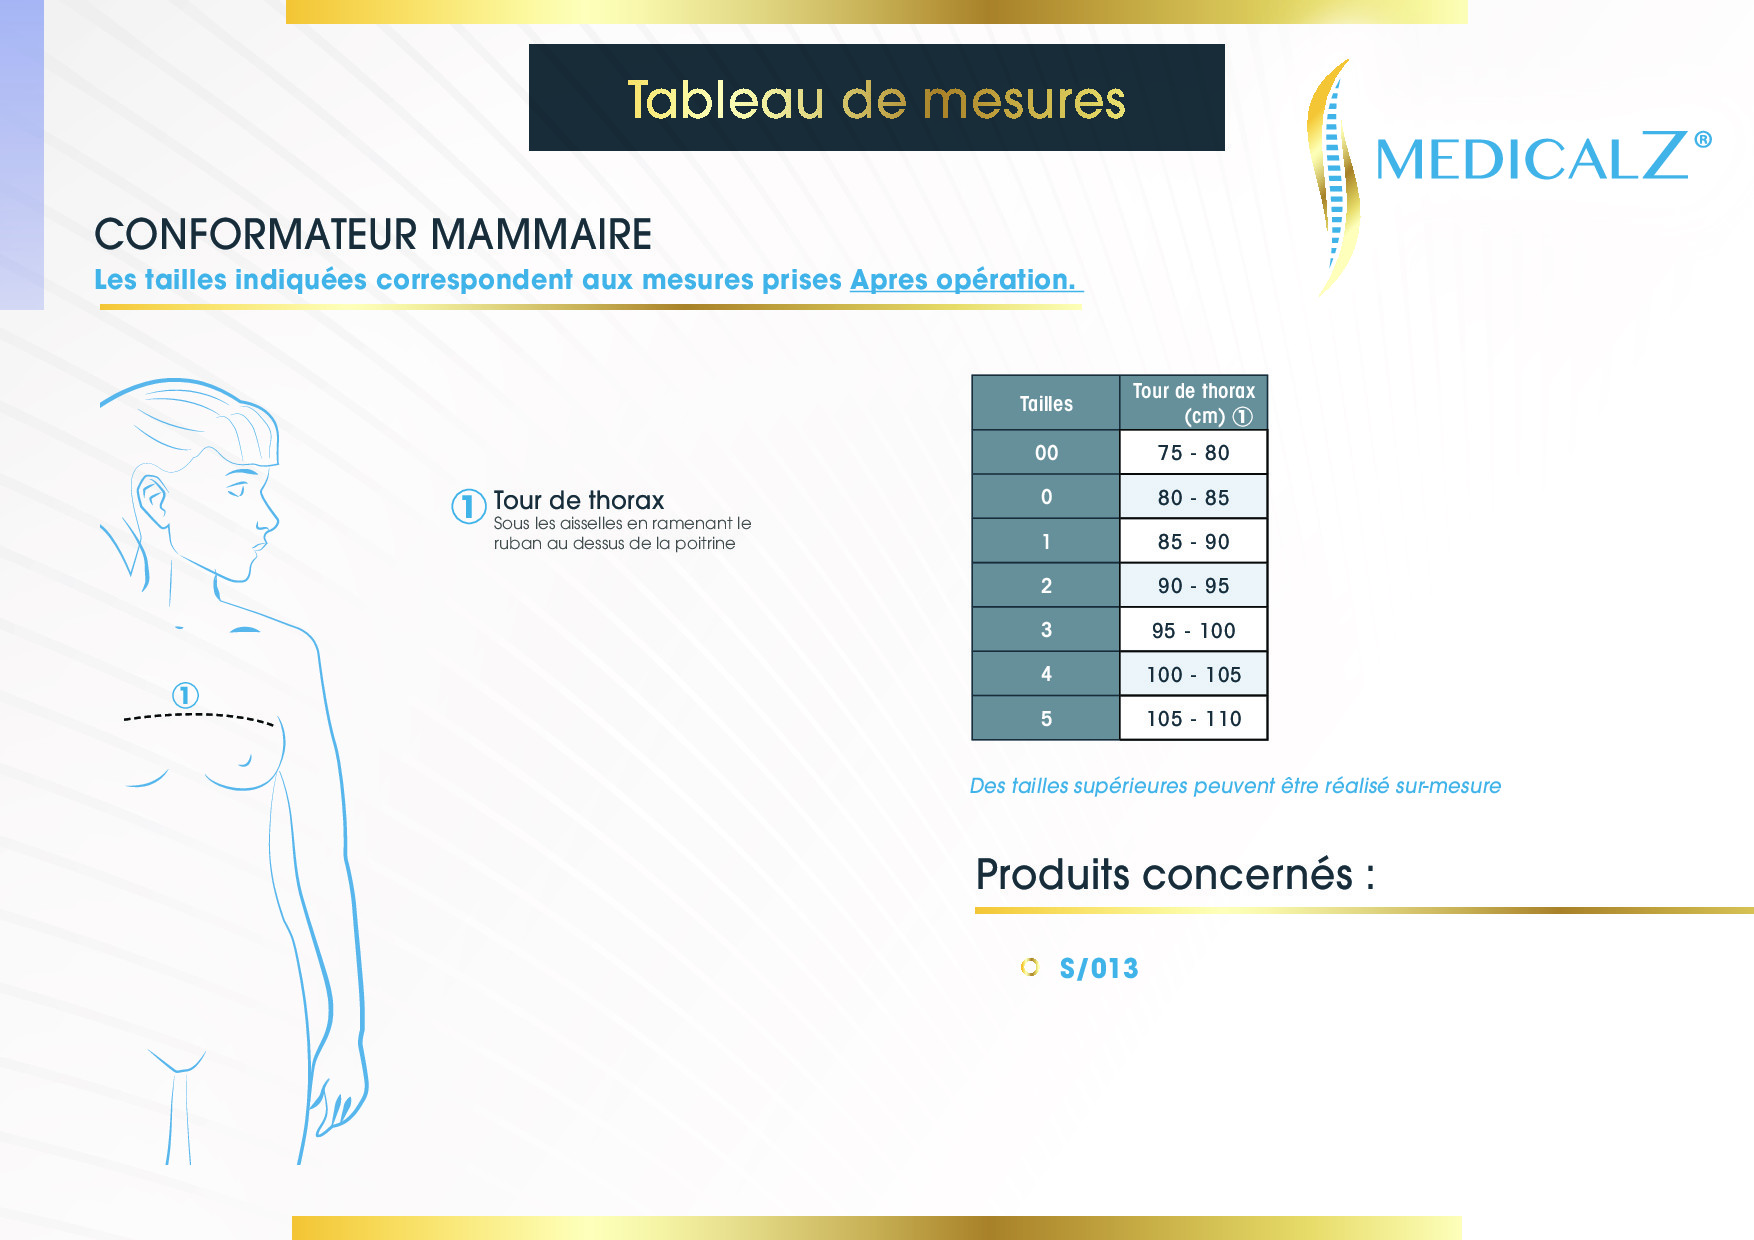 Contenseur mammaire Medical Z